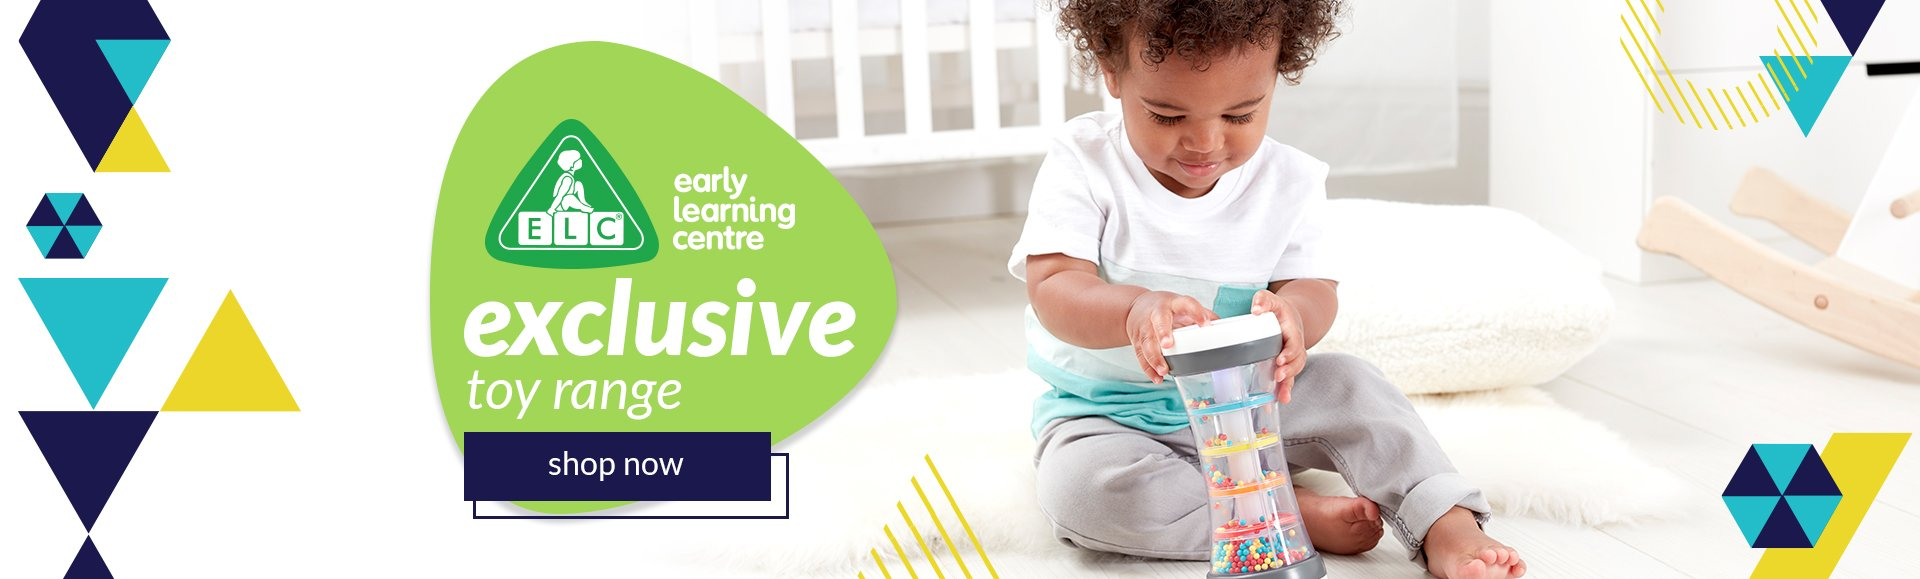 early learning centre toy range